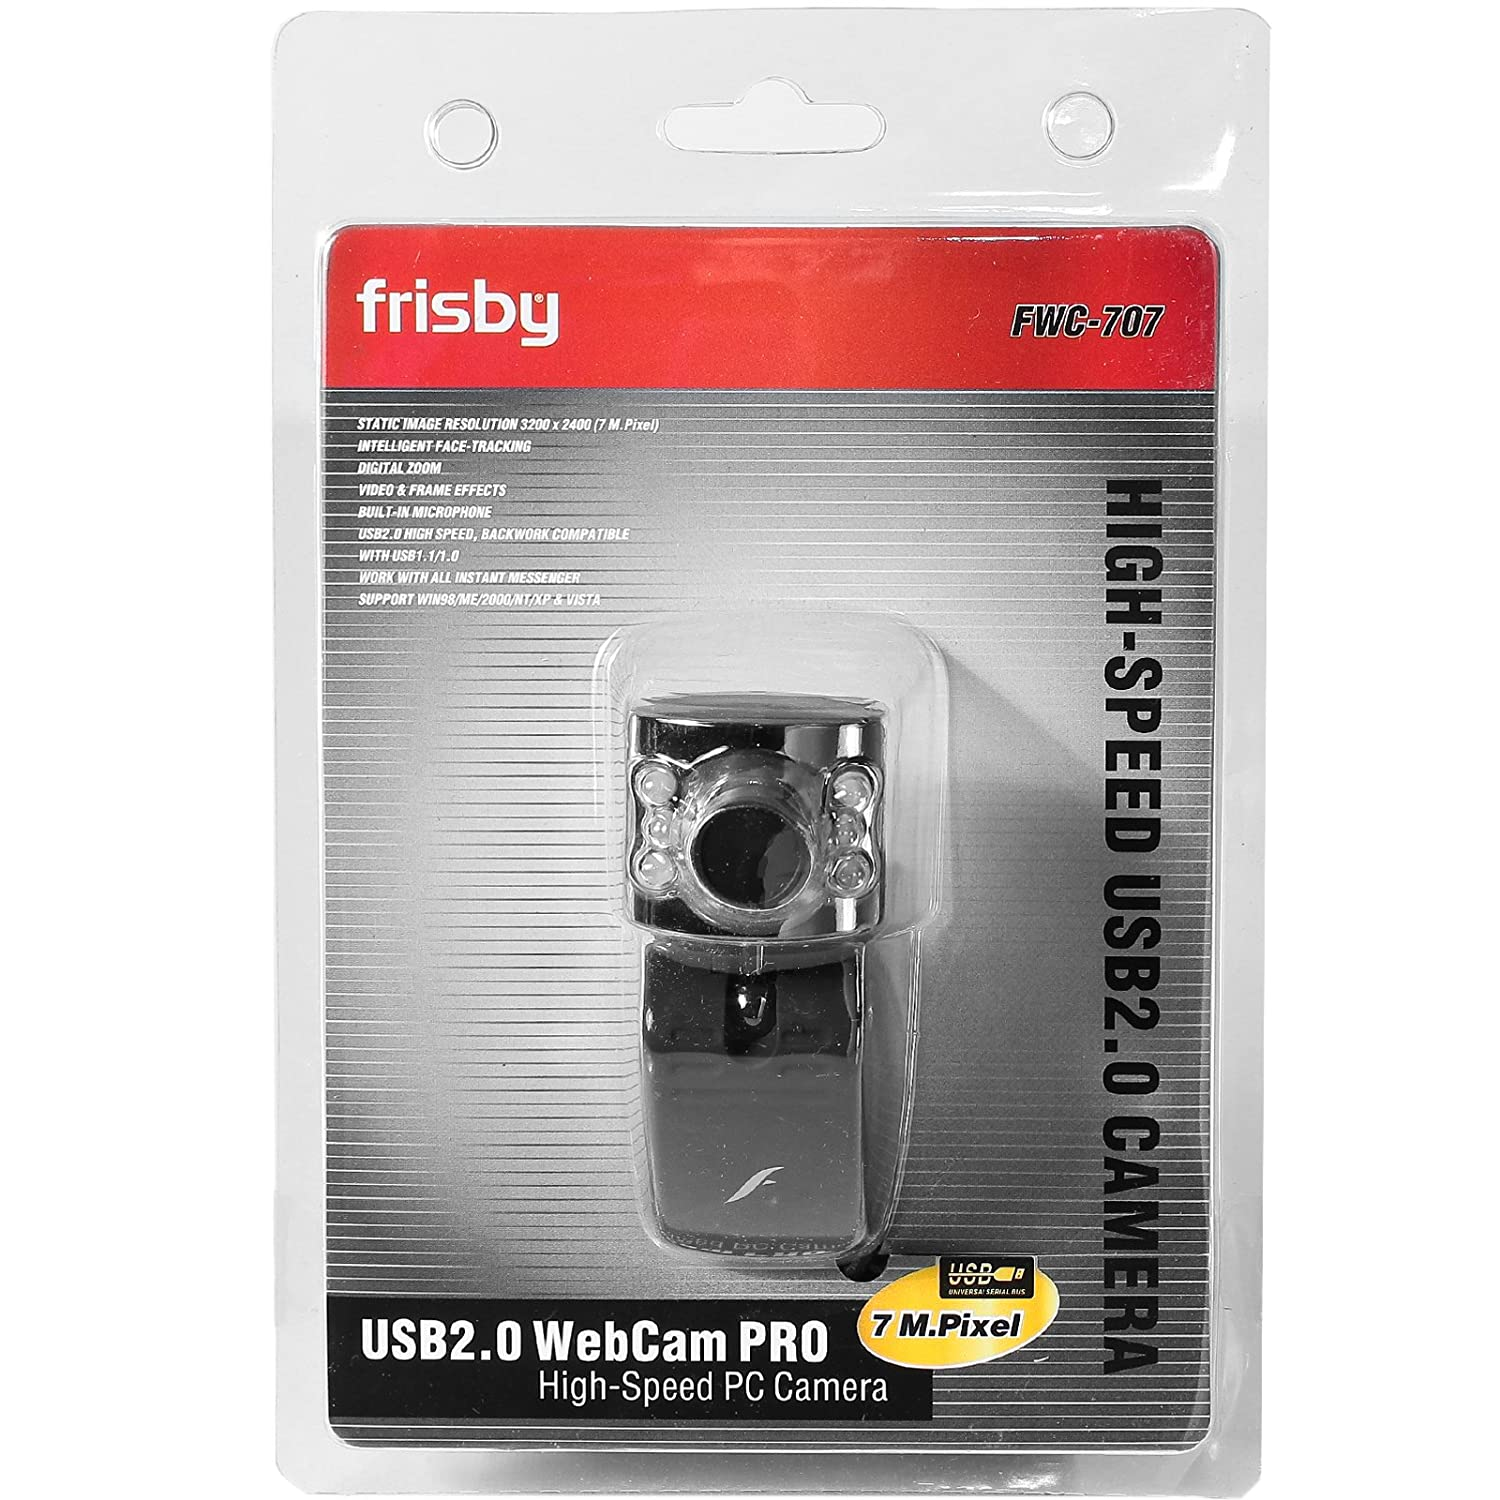 FRISBY MODEL CAM 106 WINDOWS 8 DRIVER